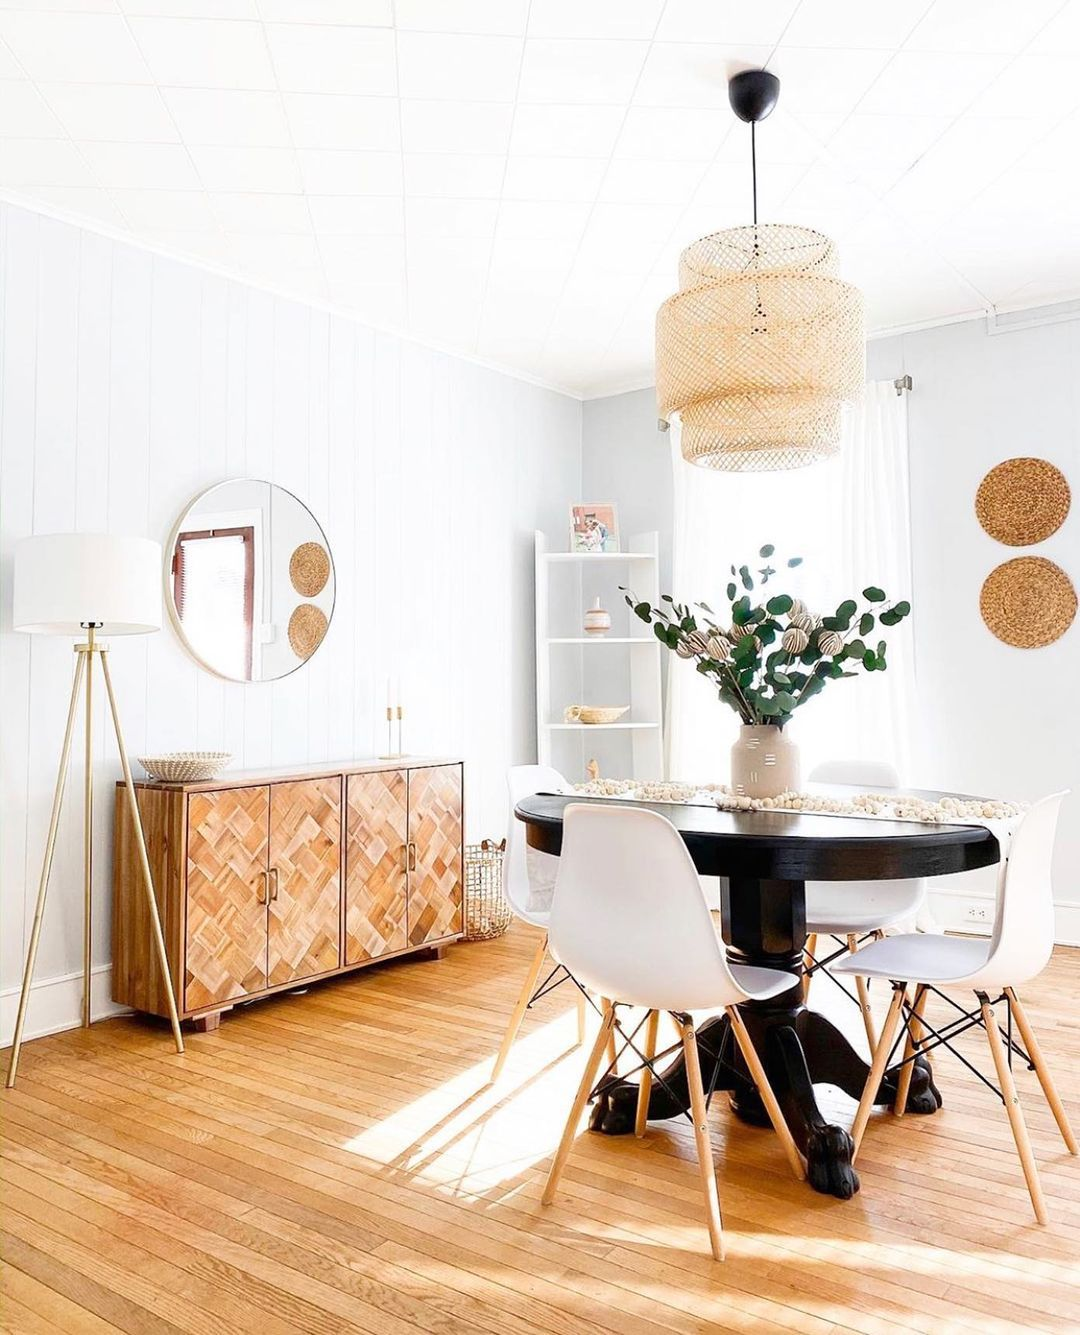 This Light Fixture Trend Will Take Your Space to the Next Level